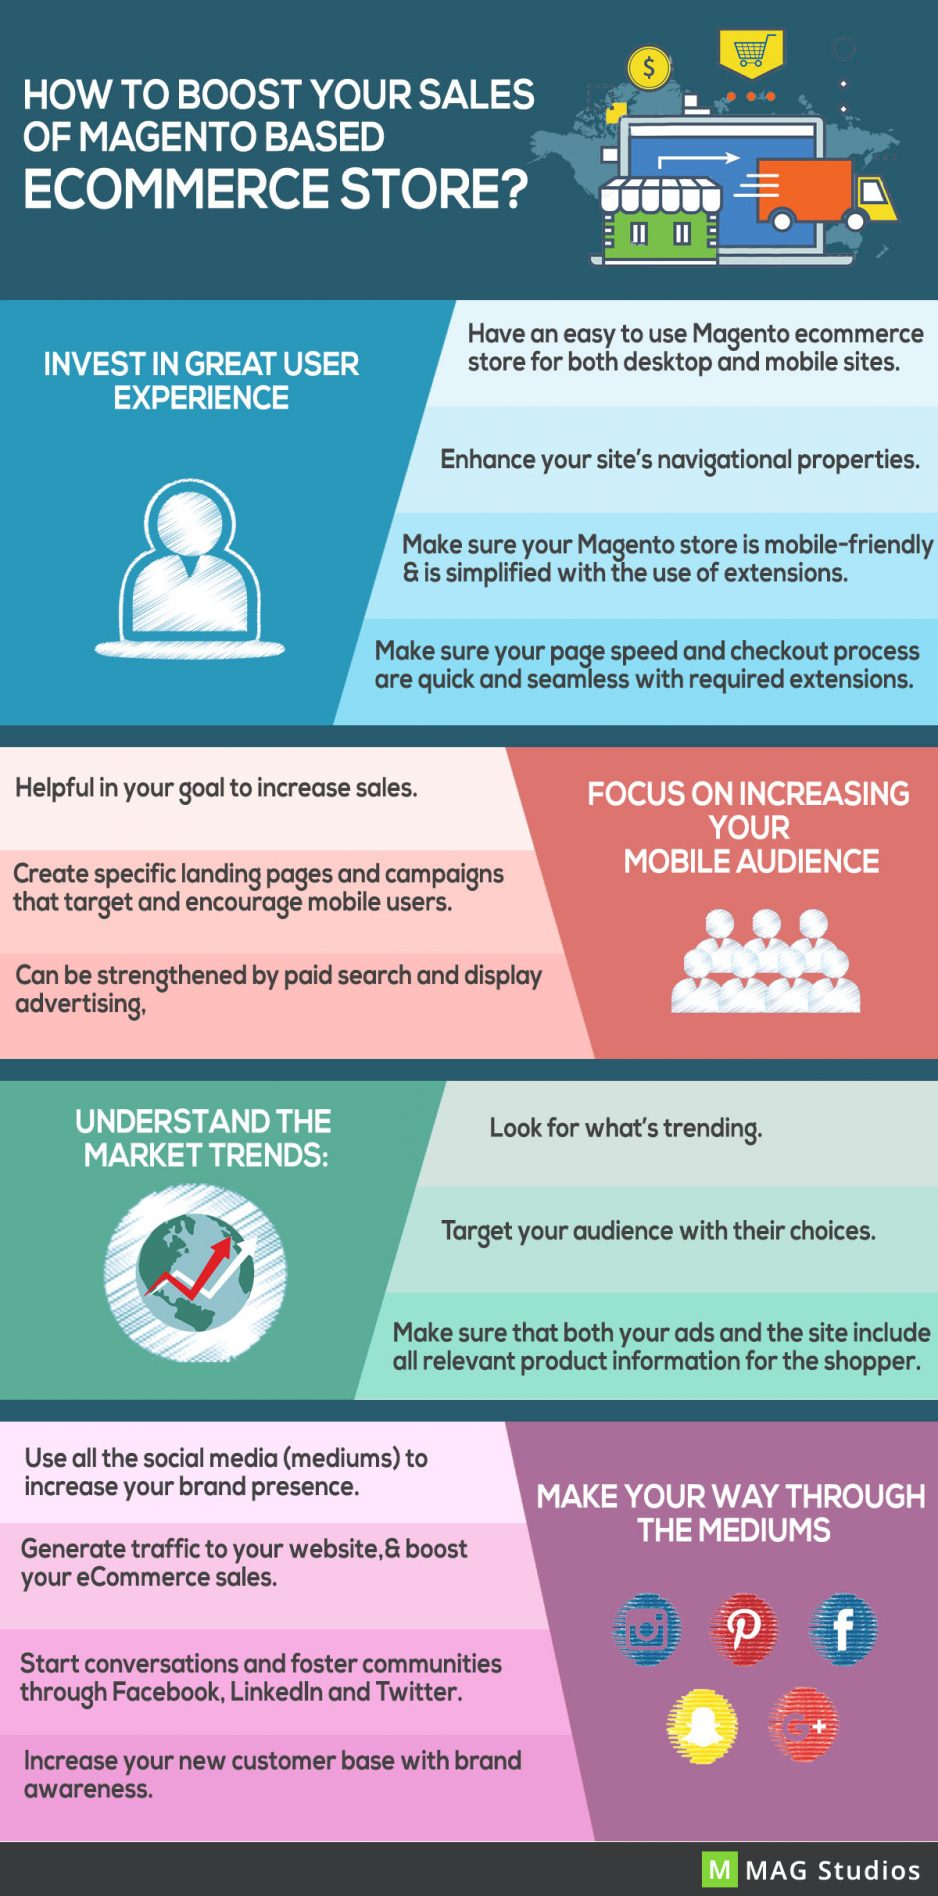 Tips to boost your sales of Magento based eCommerce Store